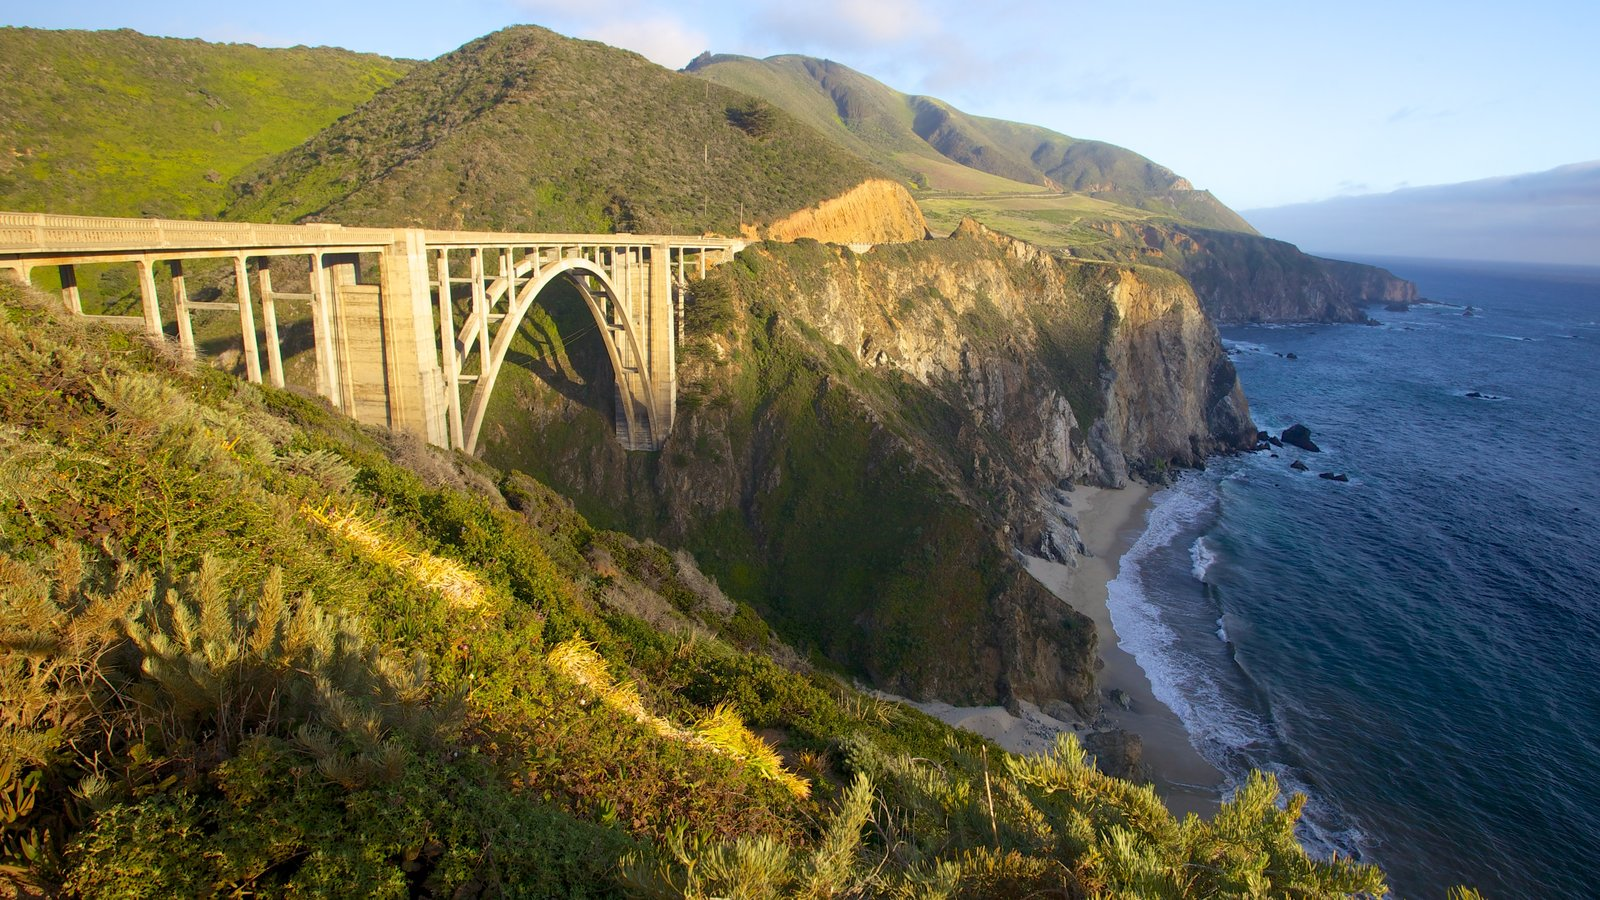 Pfeiffer Big Sur State Park featuring a bridge, views and rugged coastline